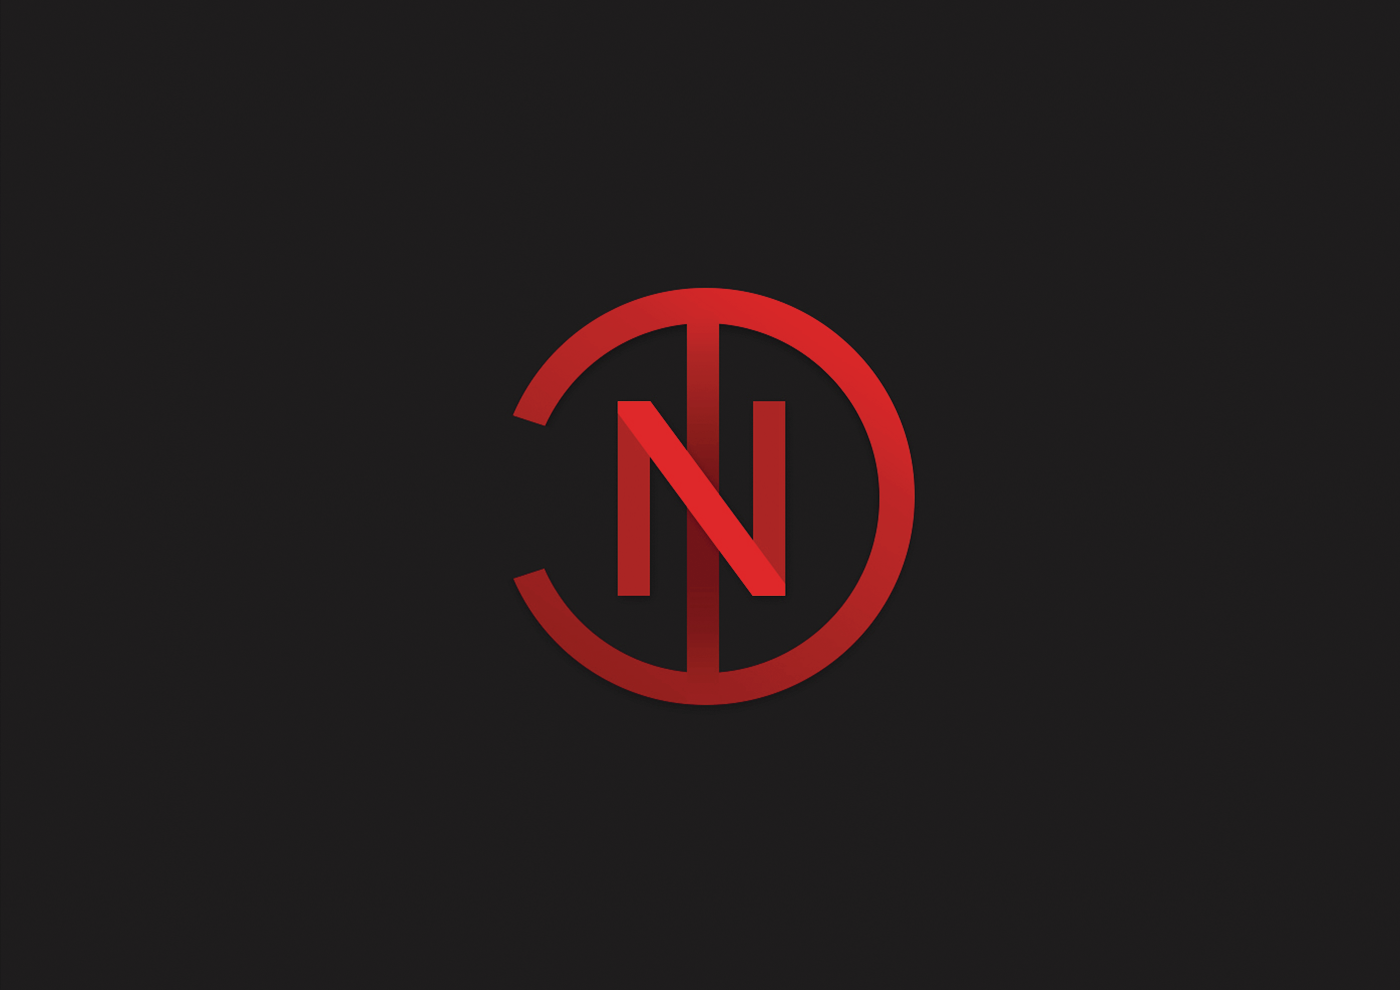 ND ndevil Icon logo initials tech